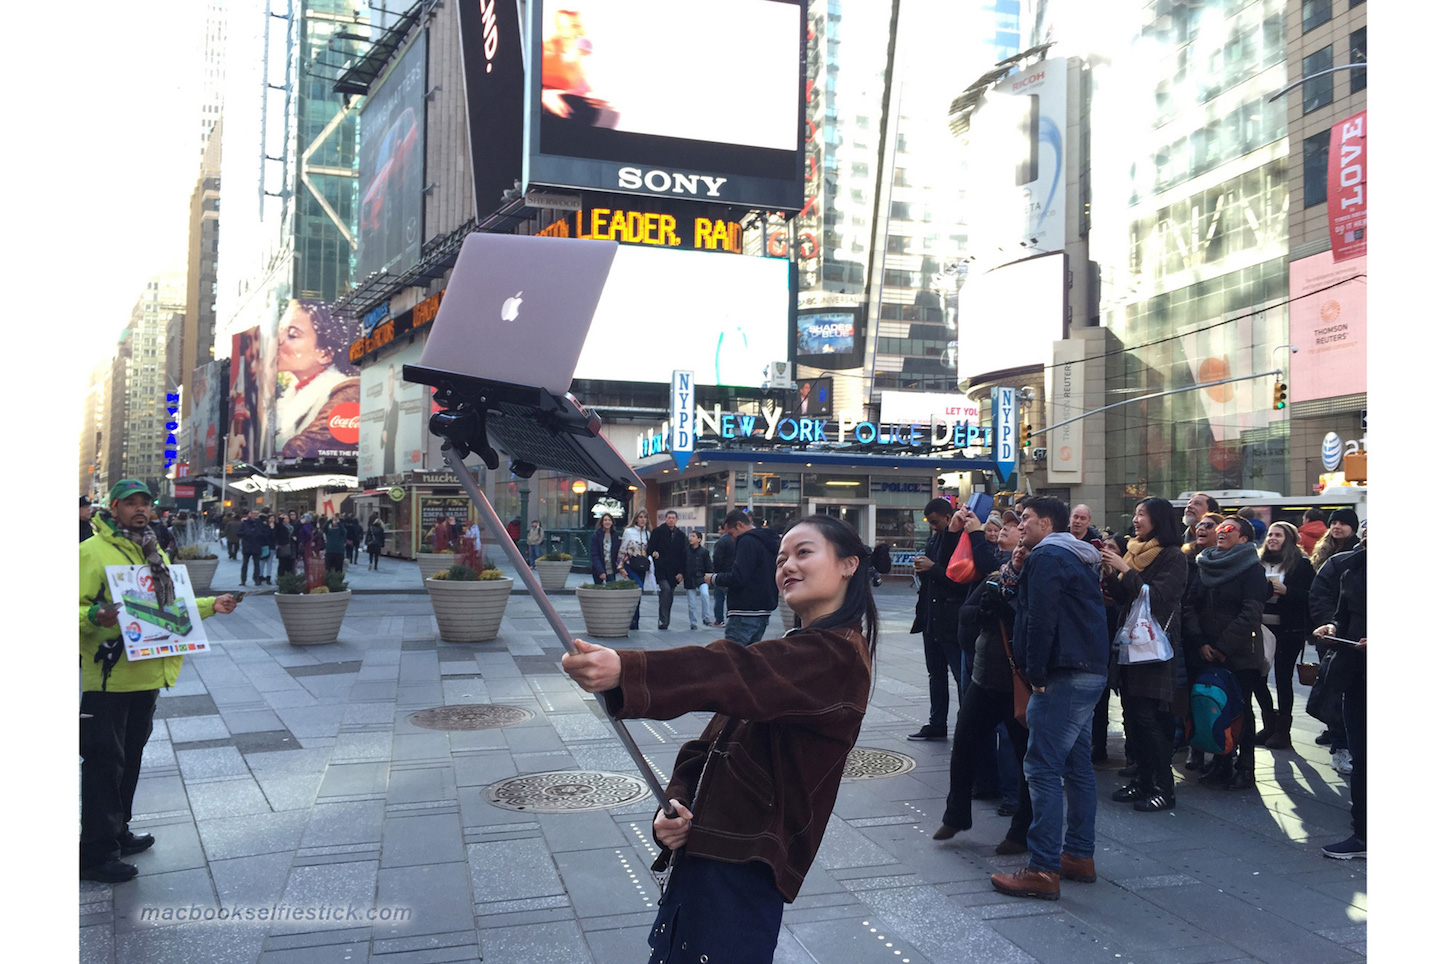 macbook-selfie-stick-4.jpg